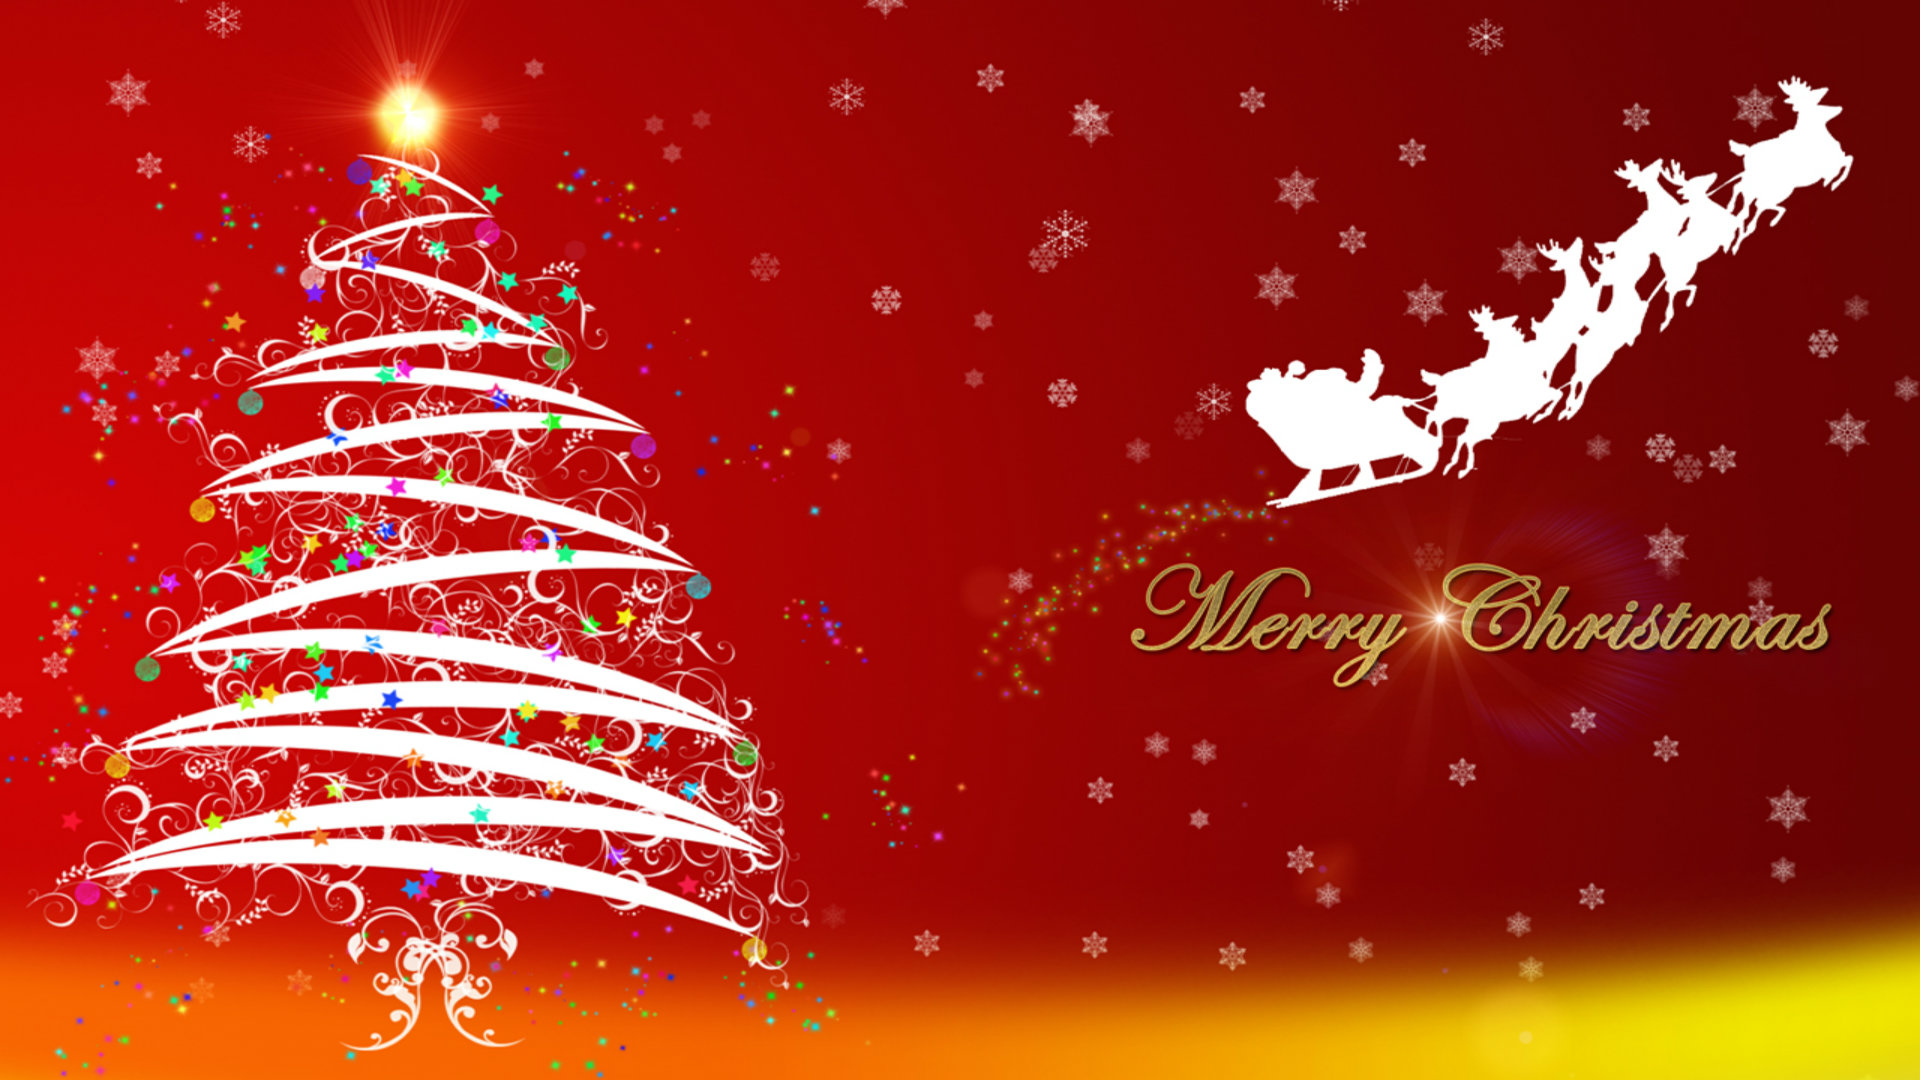 Christmas HD wallpaper For download in laptop and desktop